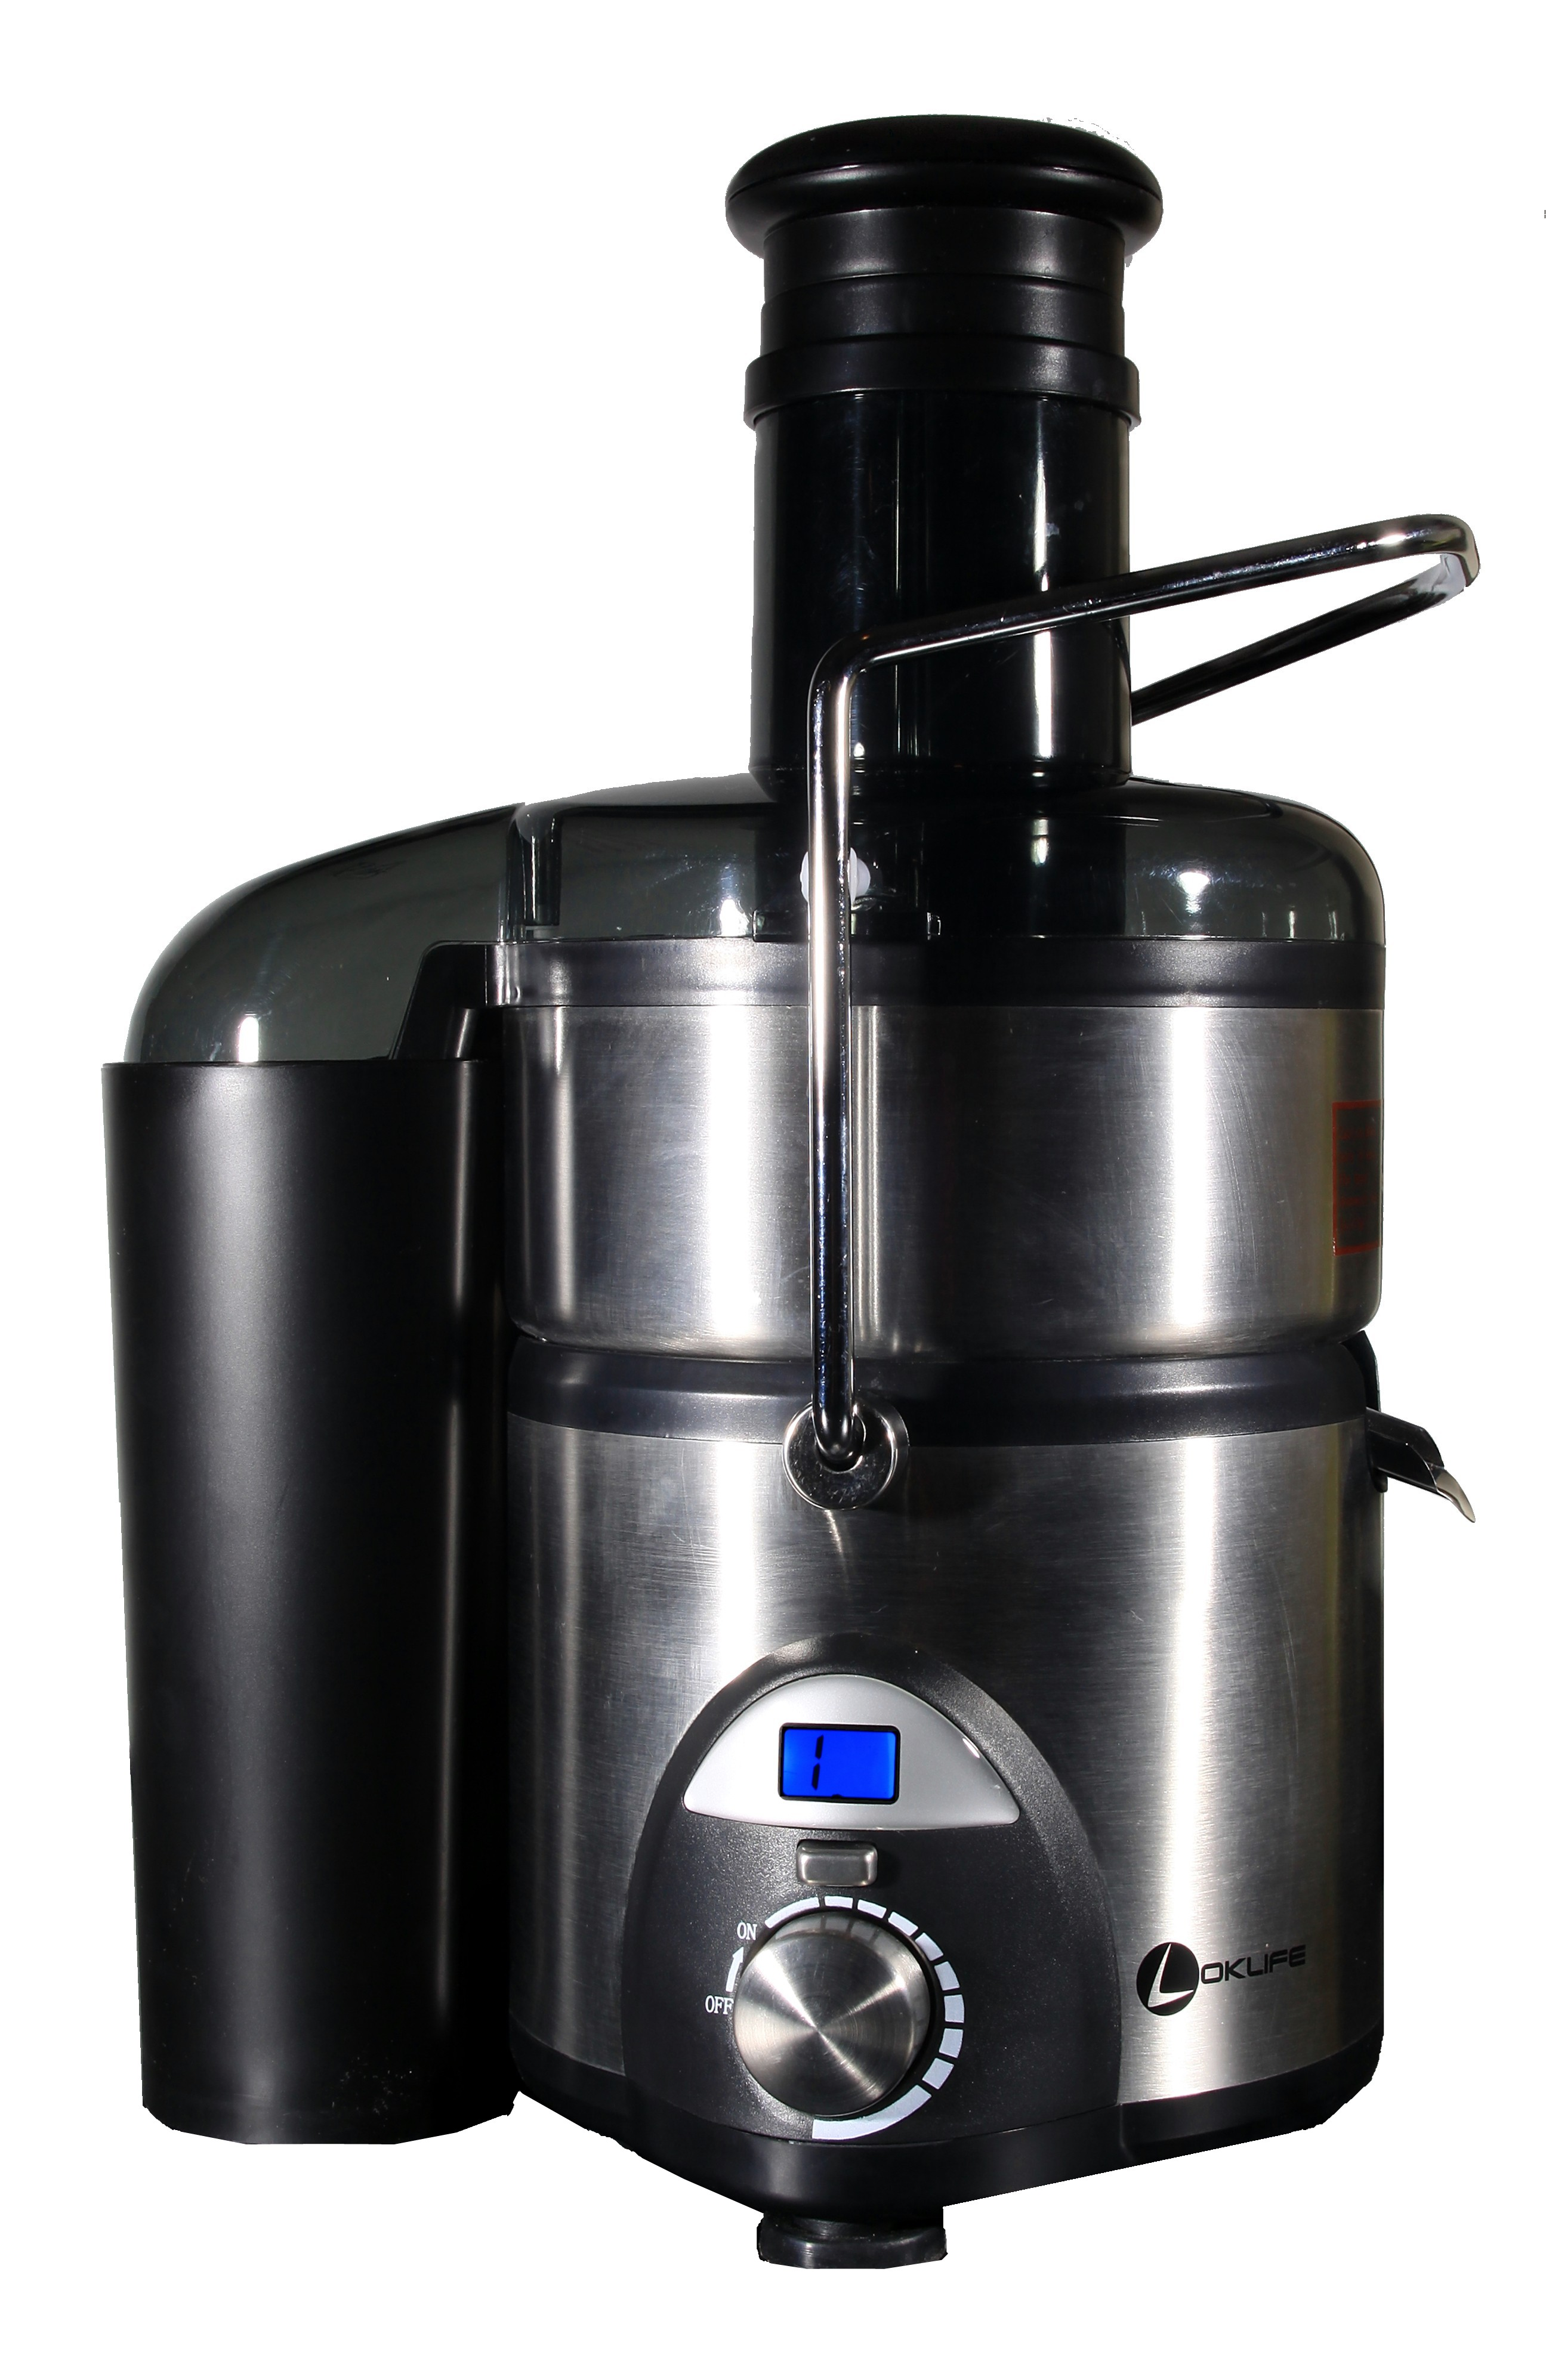 Best Juicer-Oklife 9-Speed Stainless Steel Juice Extractor